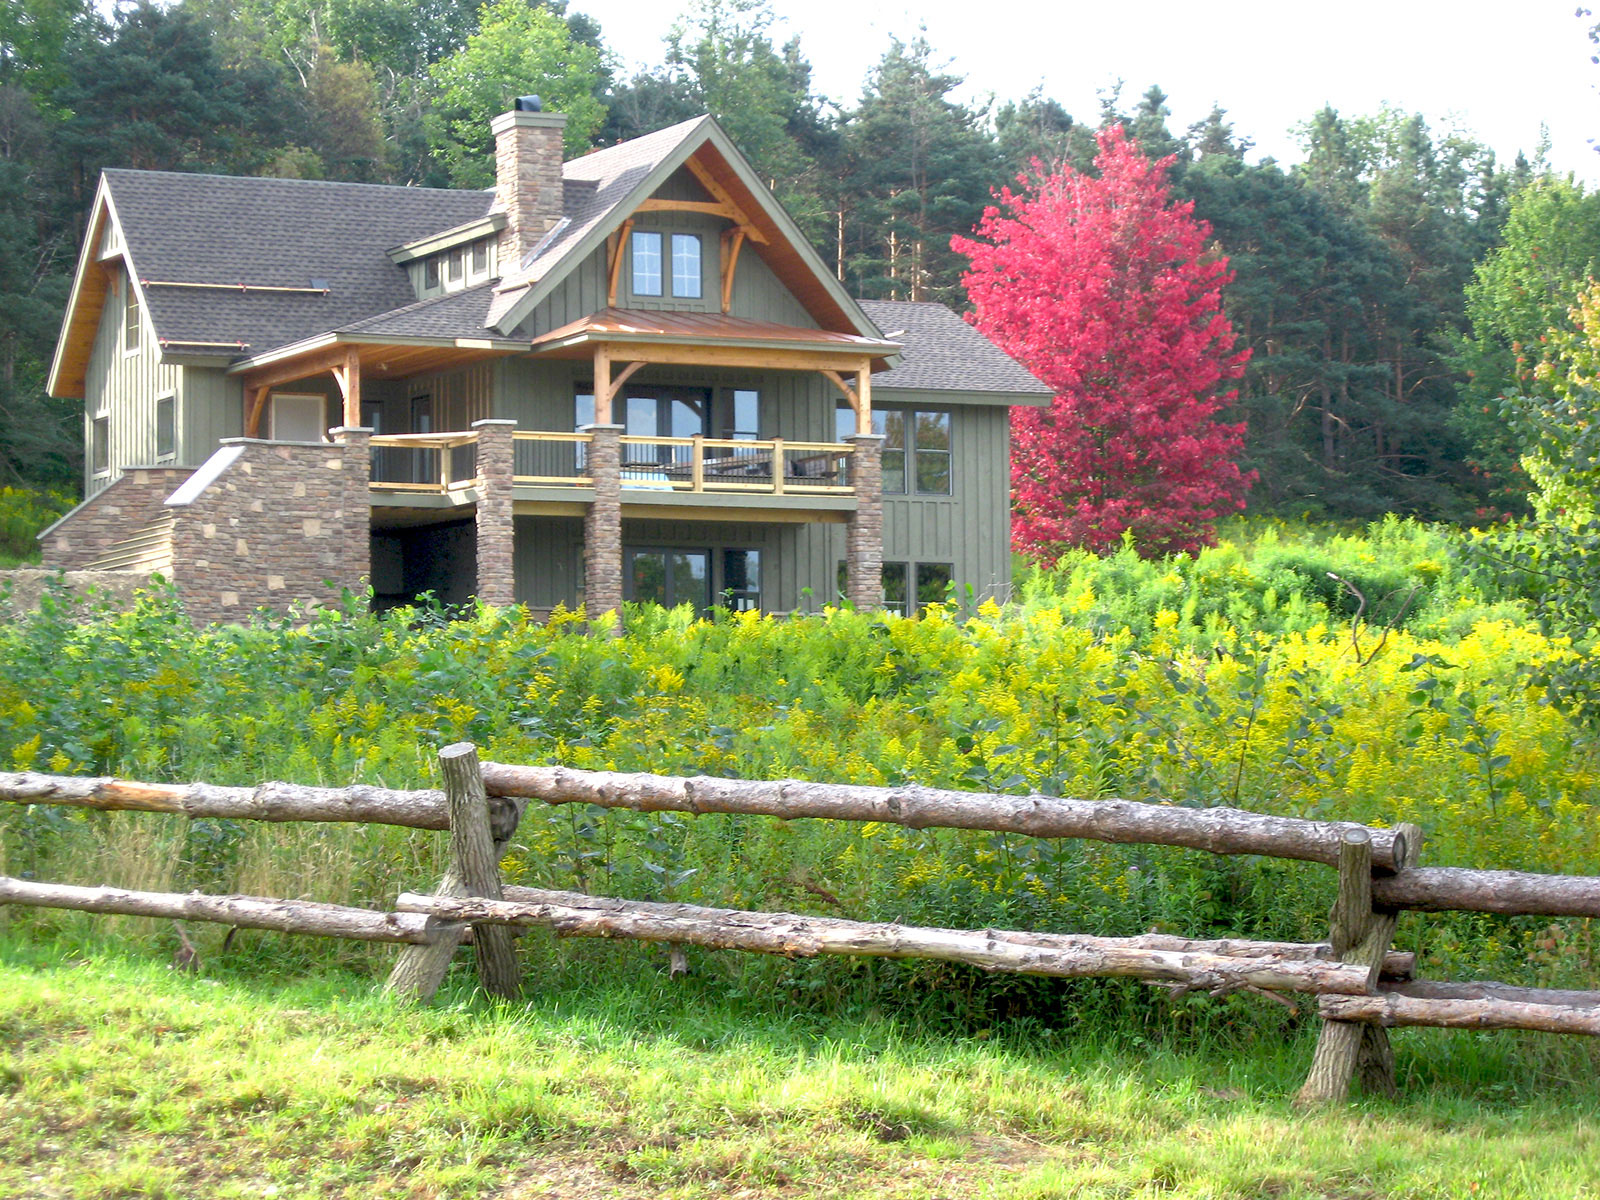 Ellicottville chalet photos lofty mountain homes for Mountain cabin homes